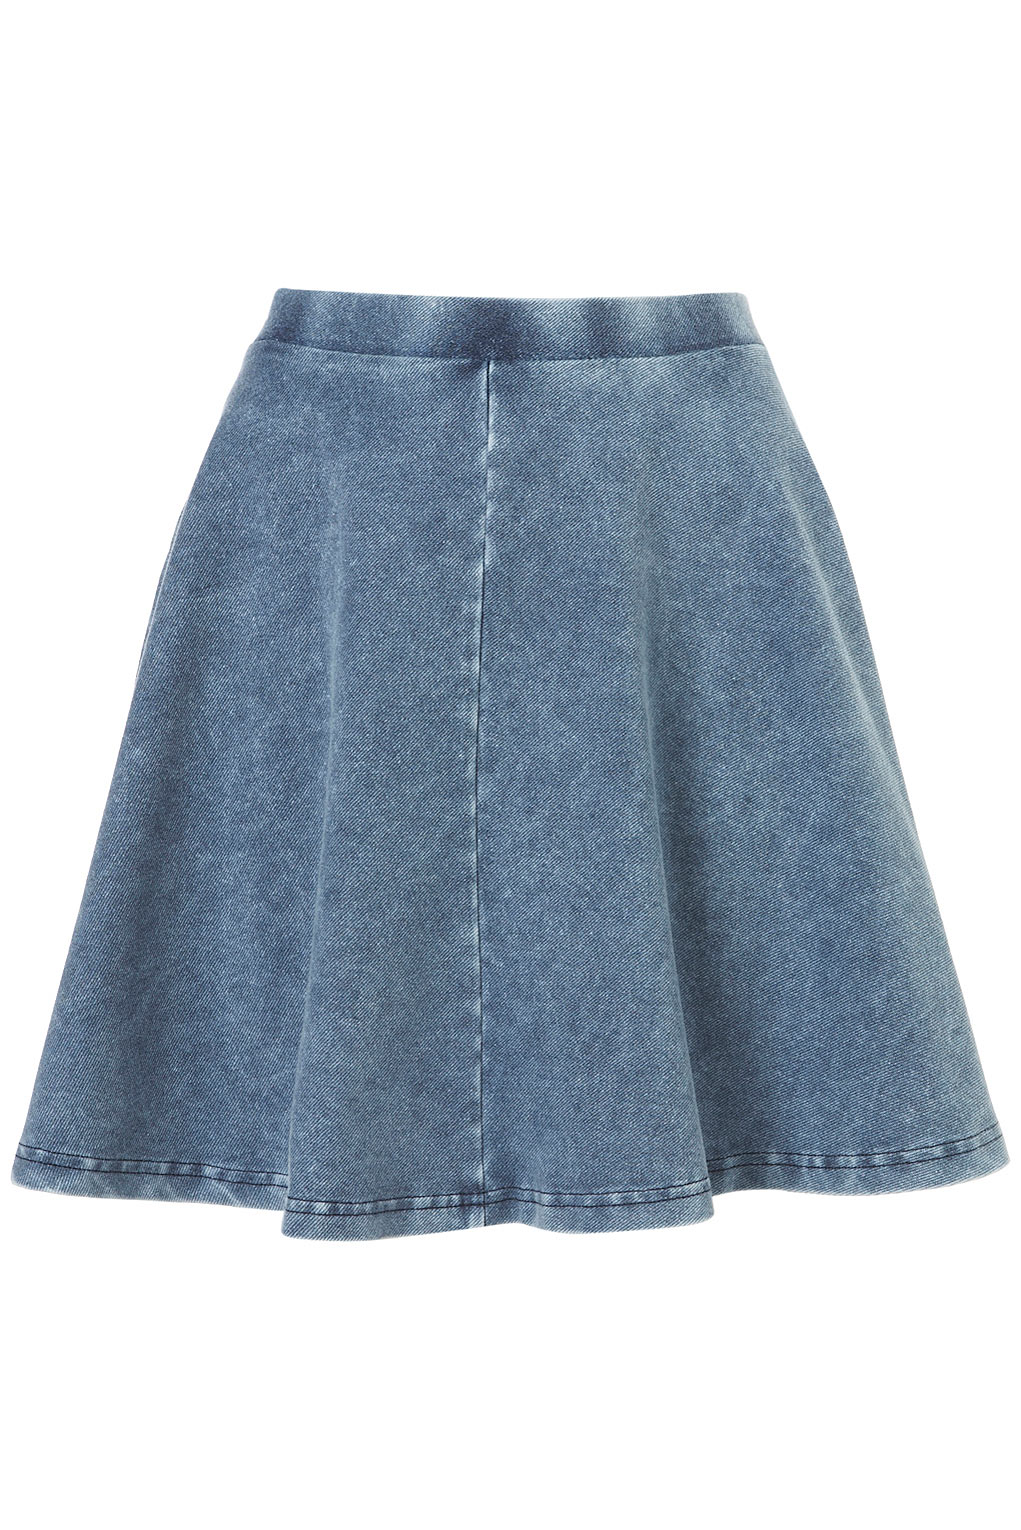 Denim Overall Romper Skater Skirt with Front Pocket and Adjustable Strap. Youhan Women's Summer A-Line Pleated High Waist Solid Denim Skirt. by Youhan. $ - $ $ 17 $ 21 FREE Shipping on eligible orders. Amazon's Choice for